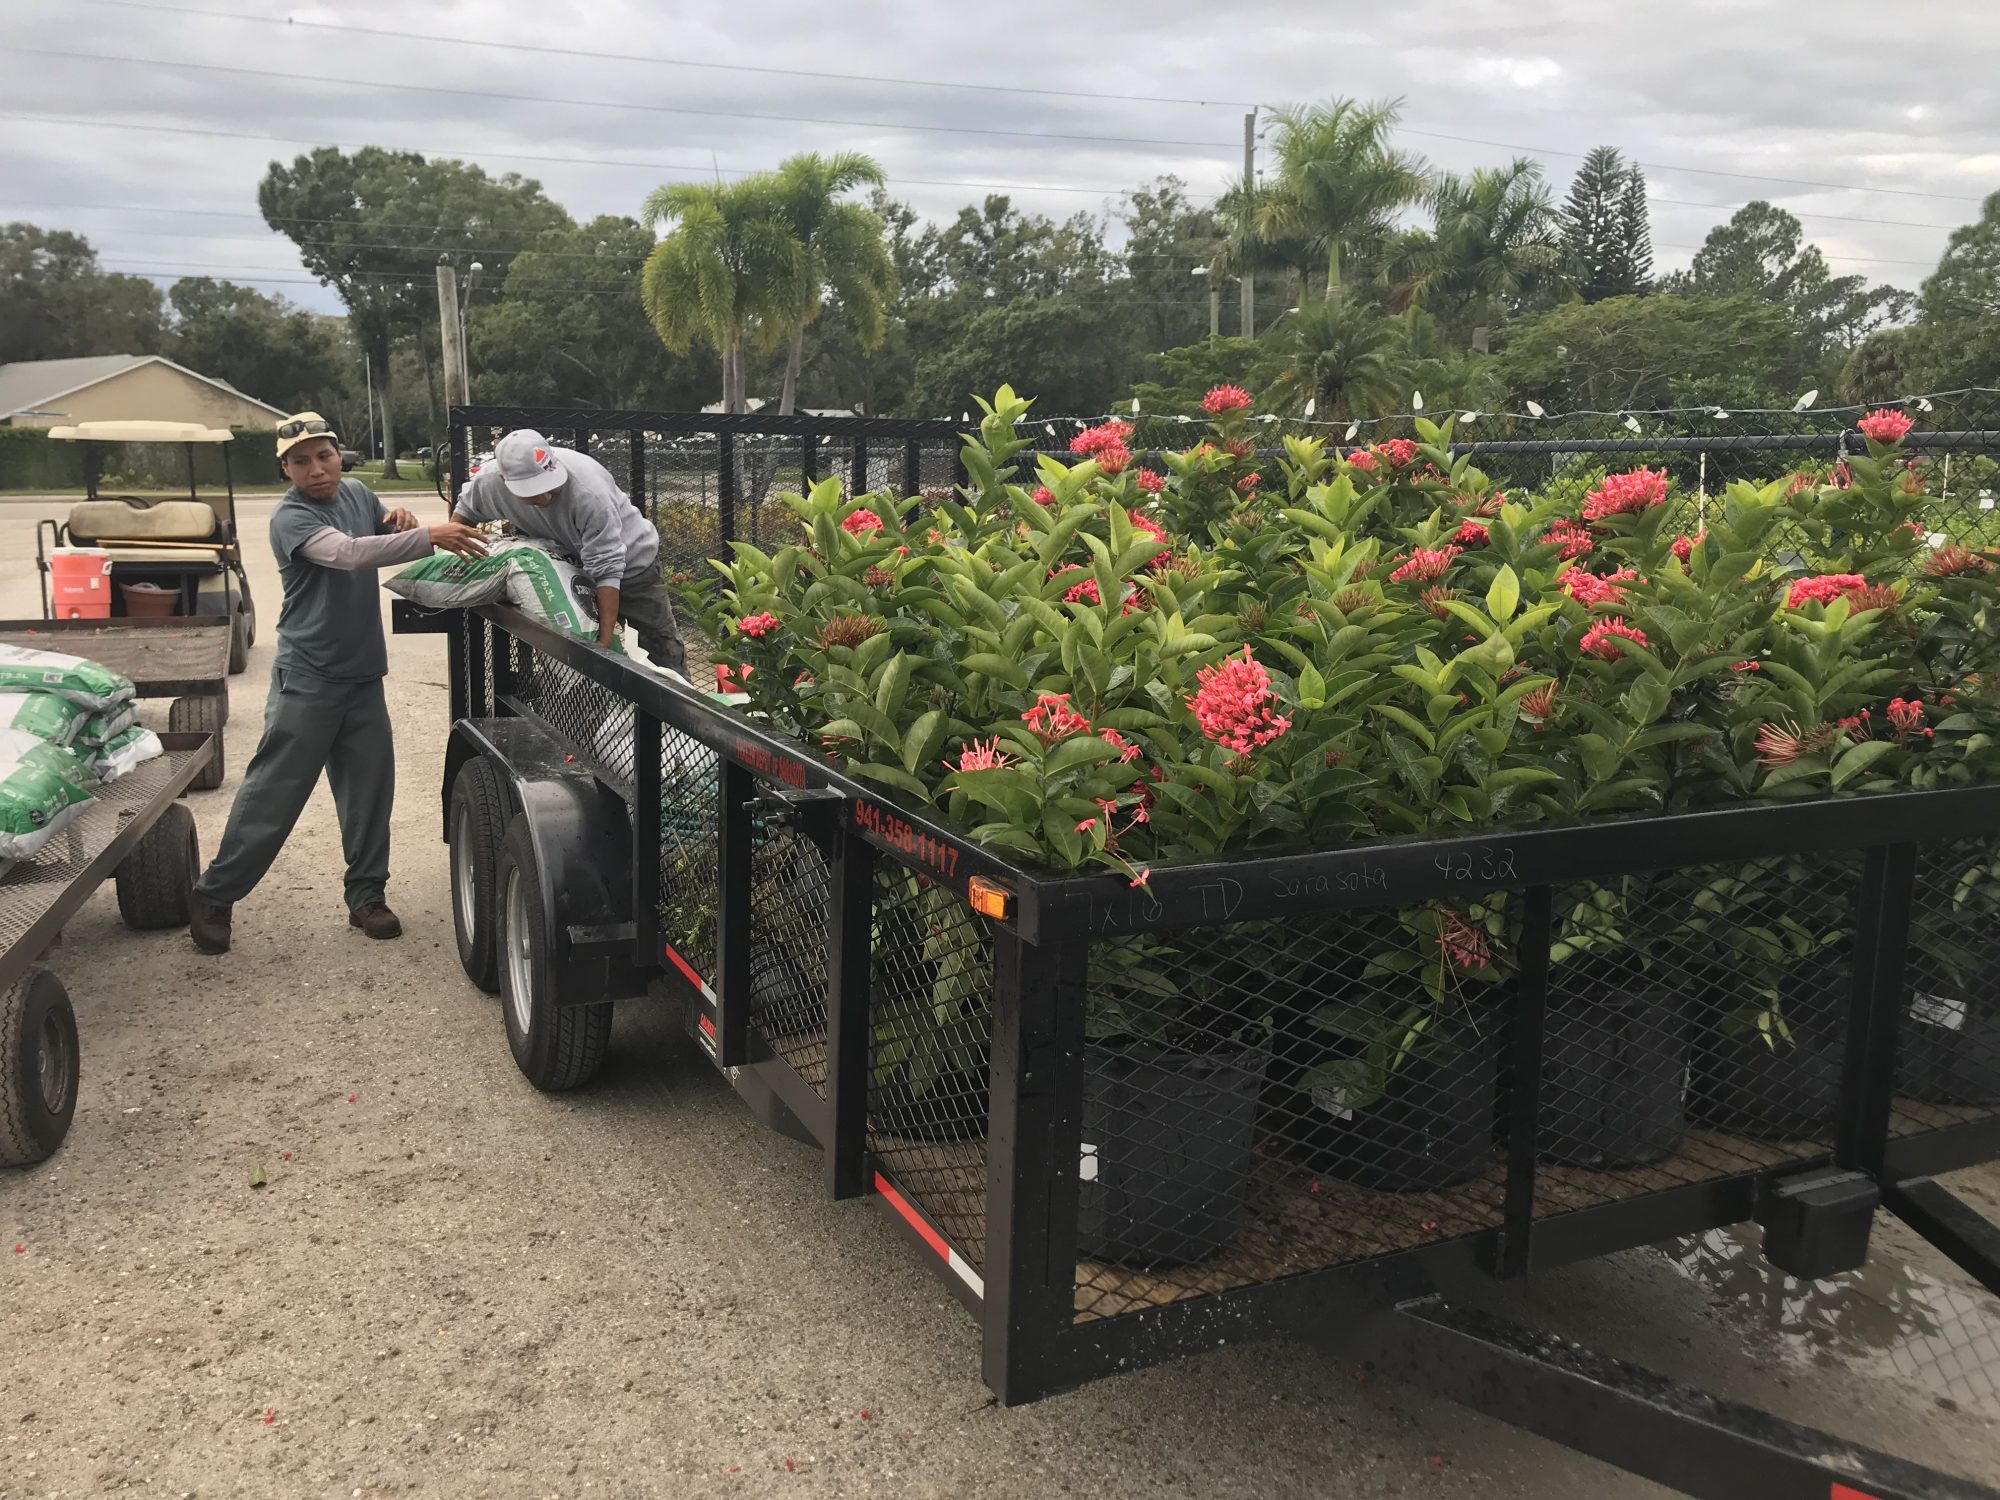 A series of tropical, flowering plants rest on the back of a trailer.